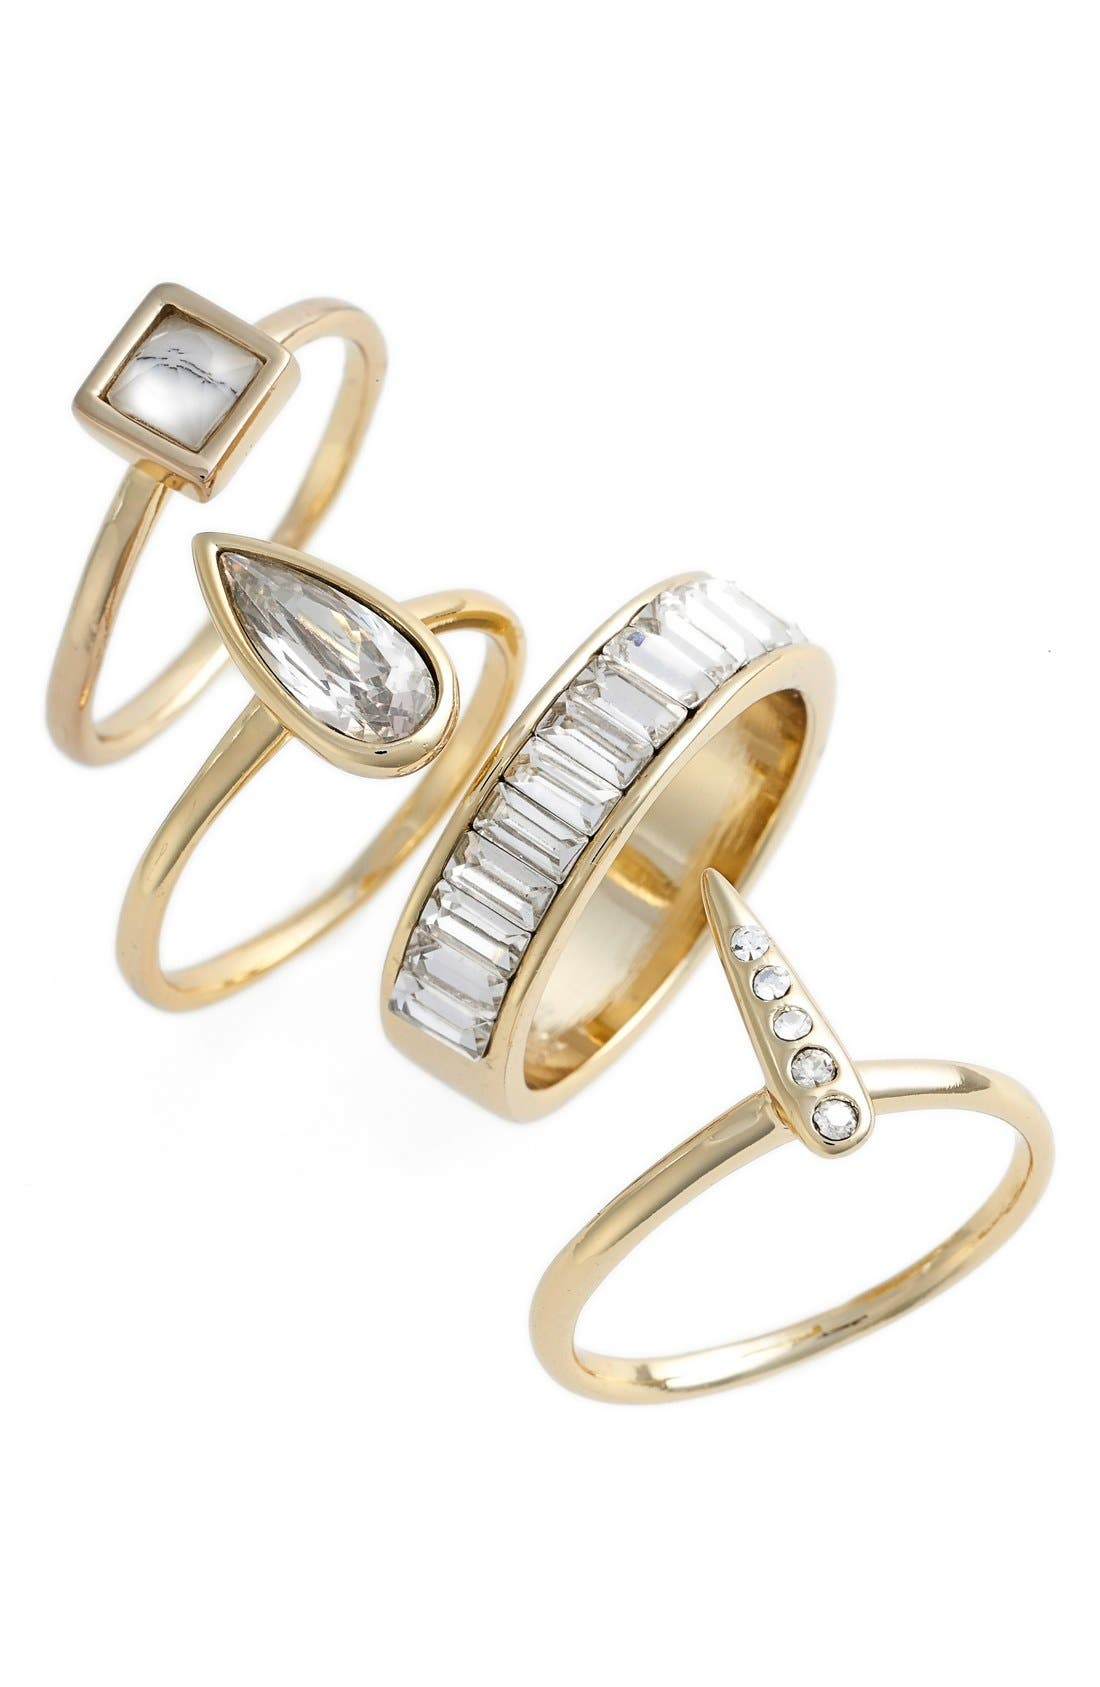 Alternate Image 1 Selected - Alexis Bittar Crystal Stacking Rings (Set of 4)